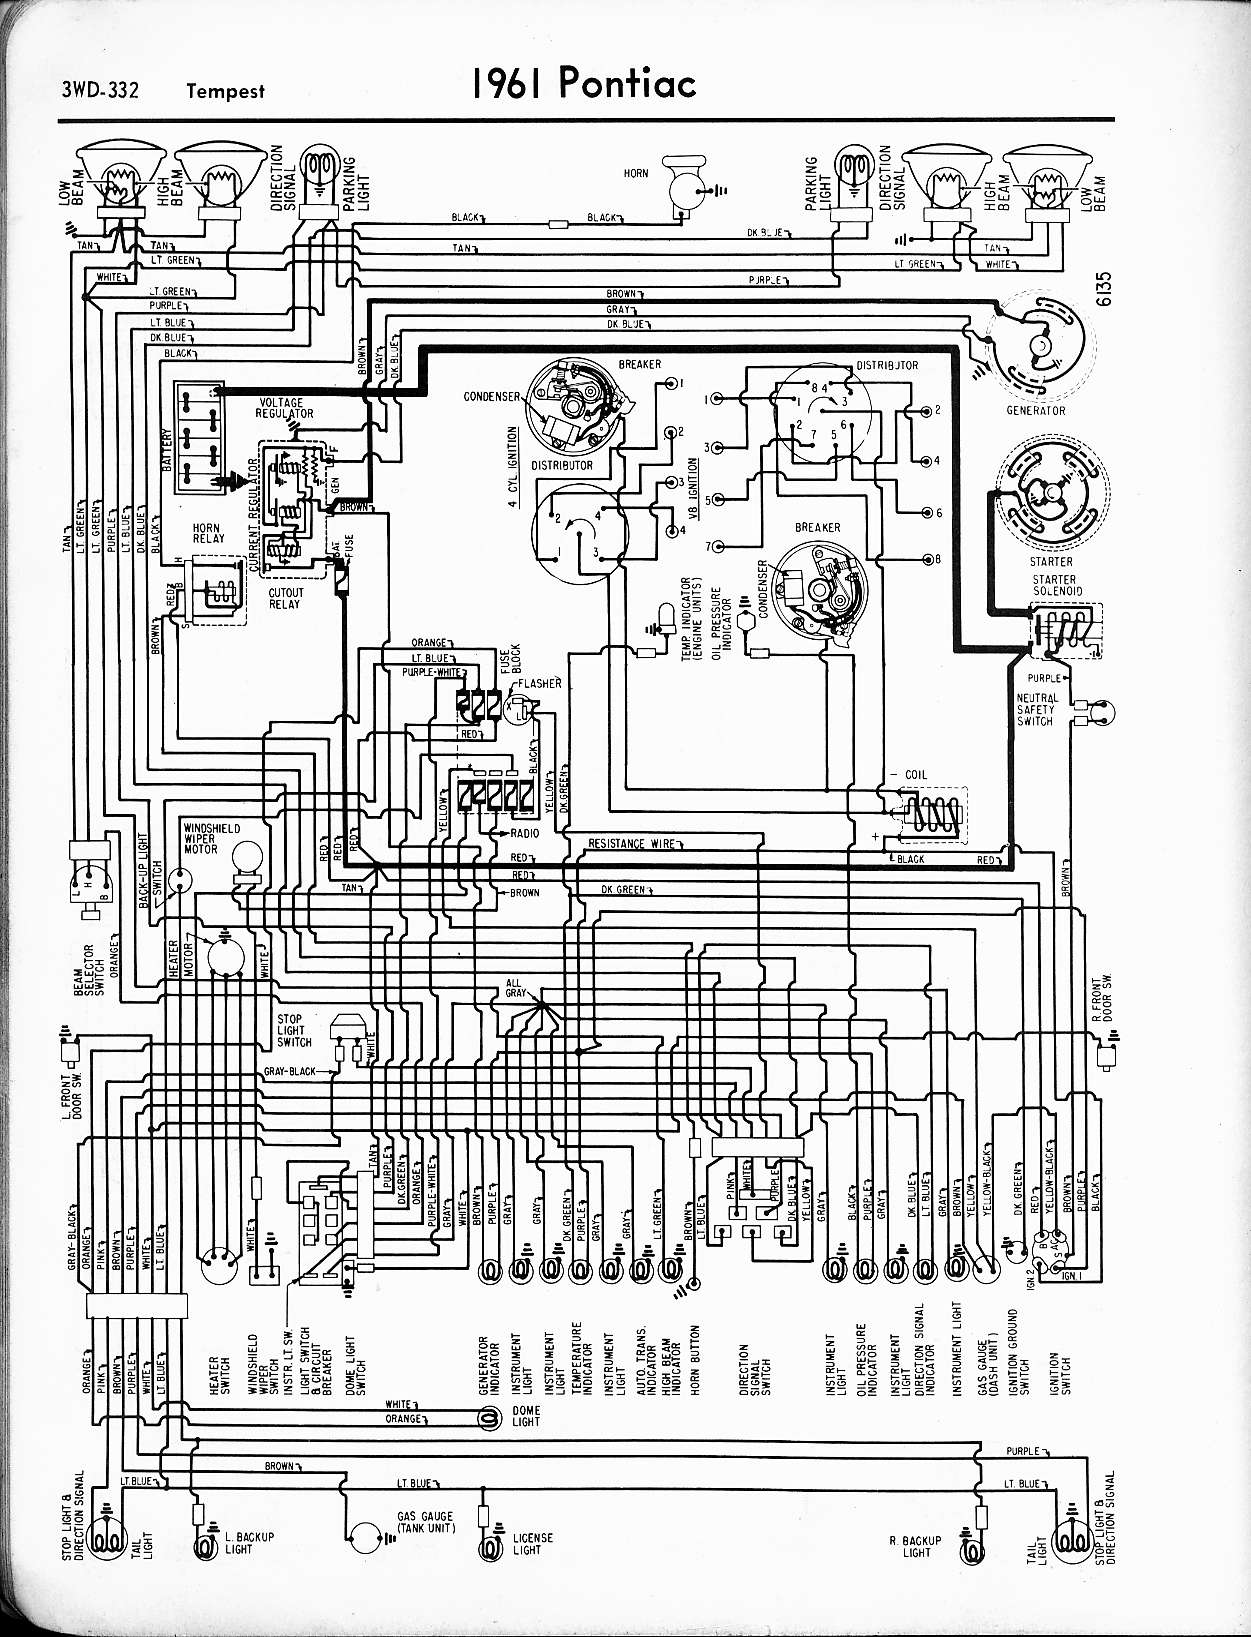 1972 Chevelle Wiring Diagram Gas Tank | Wiring Liry on 1968 amc javelin wiring diagram, 68 chevelle ignition diagram, 1968 chevy impala wiring diagram, 1969 chevy camaro wiring diagram, 1968 pontiac catalina wiring diagram, 1968 jaguar xke wiring diagram, 1968 jeep cj5 wiring diagram, 1968 chevy c10 wiring, 1955 chevy bel air wiring diagram, 68 impala wiring diagram, 1968 chevy pickup wiring diagram, 1963 chevy nova wiring diagram, 1968 dodge dart wiring diagram, 1968 mustang tach wiring diagram, 1968 ford falcon wiring diagram, 1968 cadillac deville wiring diagram, 1968 chevy van wiring diagram, 1985 el camino ignition wiring diagram, 1968 oldsmobile cutlass wiring diagram, 1968 chevy c10 fuse block,